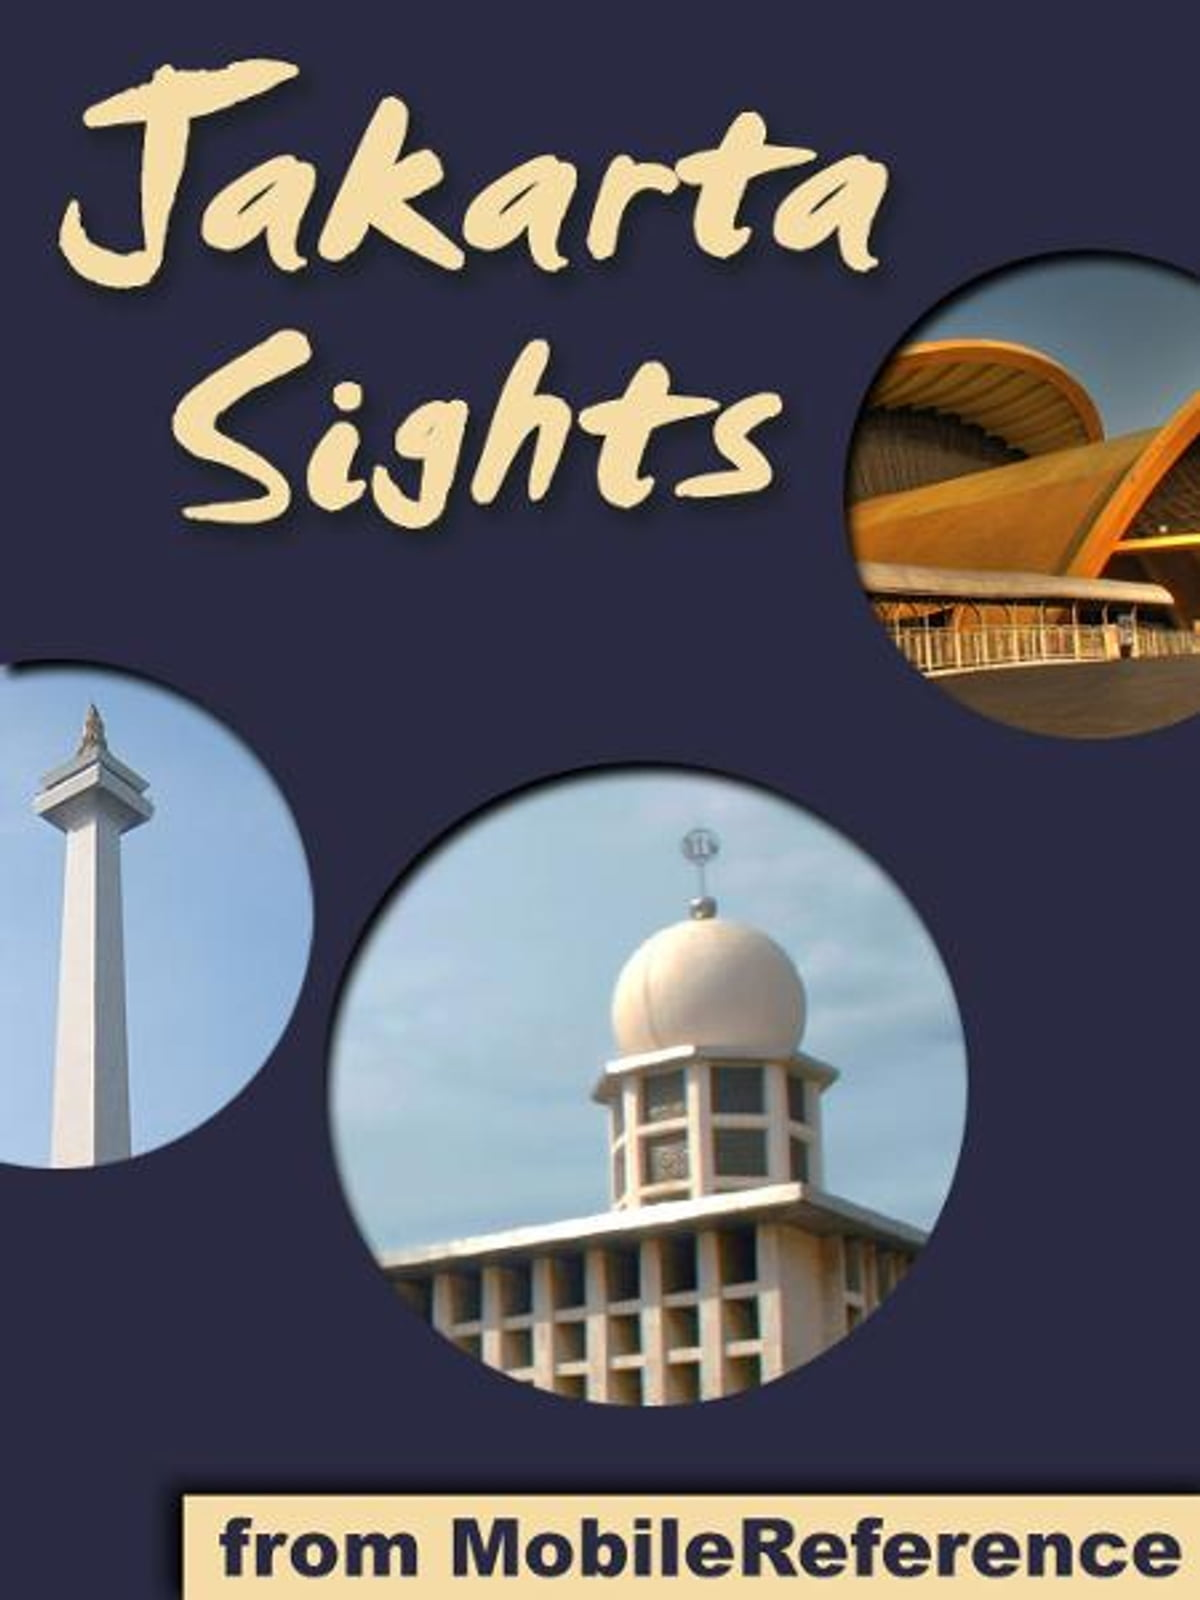 Jakarta Sights: a travel guide to the top attractions in Jakarta, Indonesia  (Mobi Sights) eBook by MobileReference - 9781611981759 | Rakuten Kobo